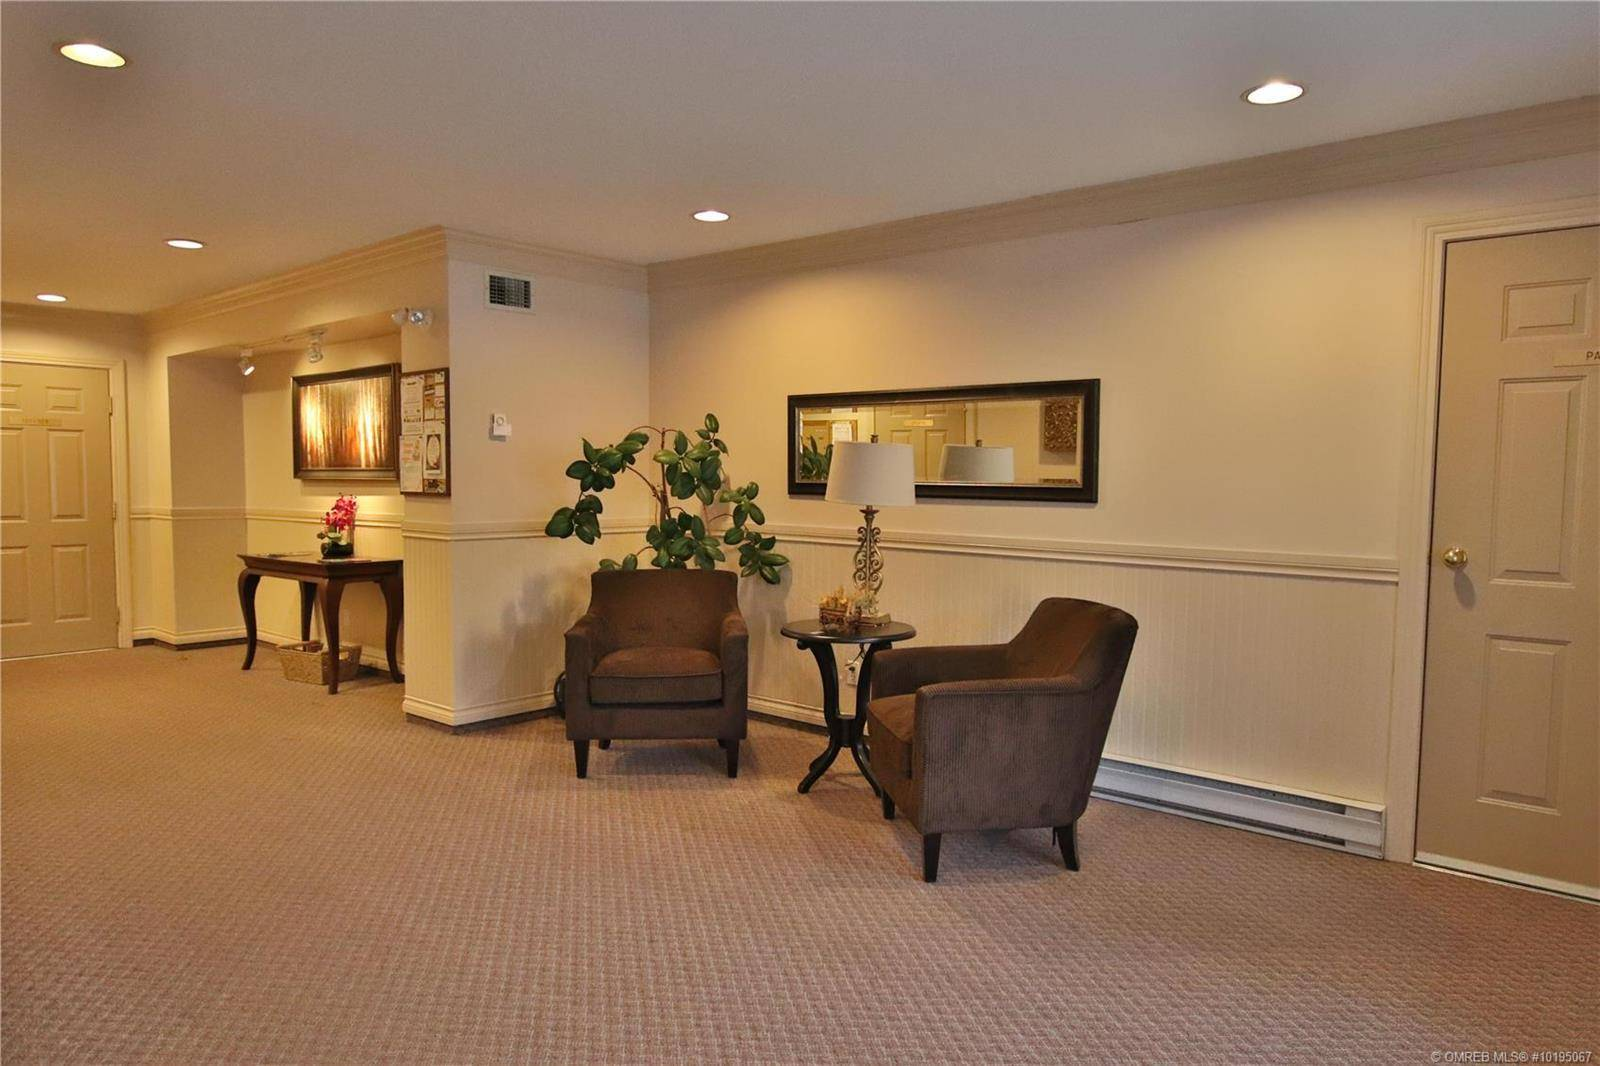 Condo for sale at 3850 Brown Rd Unit 205 District Of West Kelowna British Columbia - MLS: 10195067